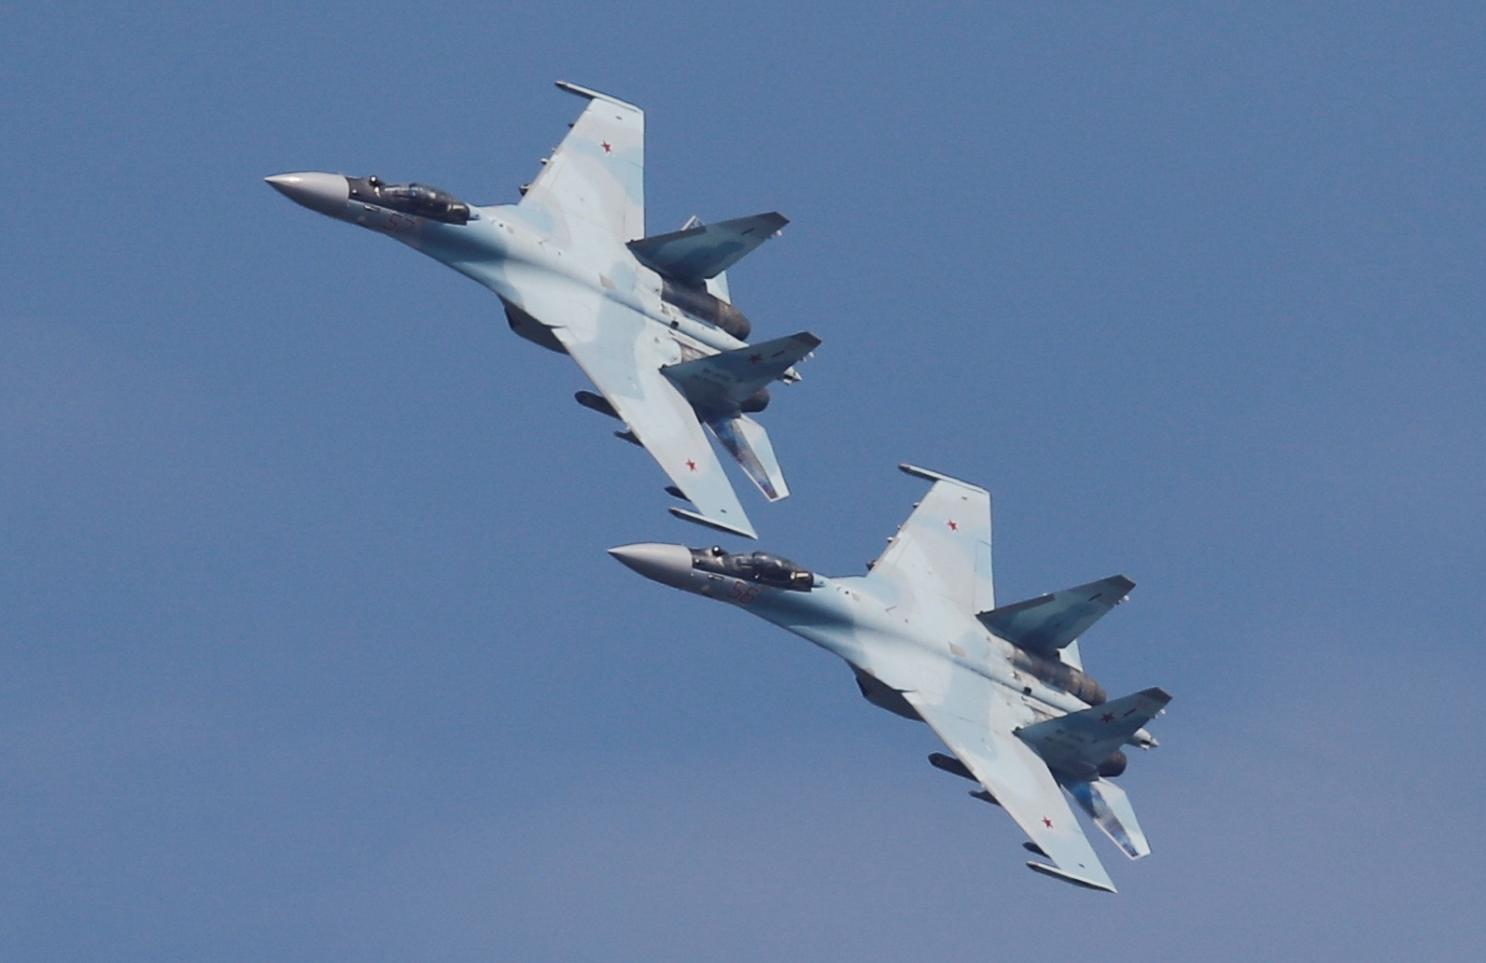 Sukhoi Su-35 Flanker-E Fighter Jet